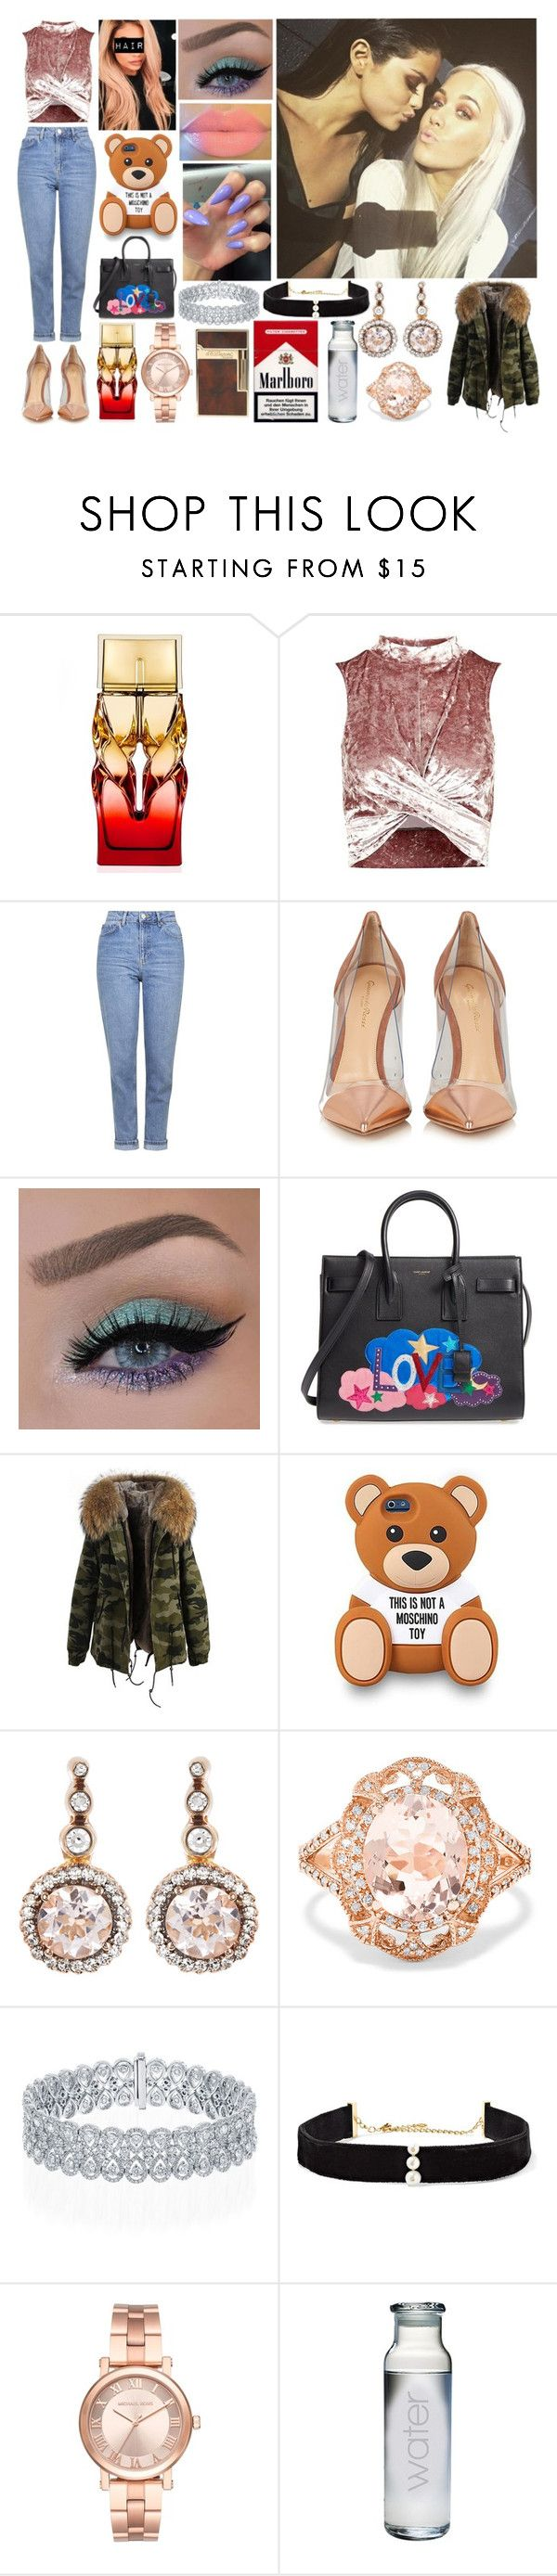 """Taking Selfies with Lottie and Selena Backstage at the XFactor"" by cookie-yolo-girl ❤ liked on Polyvore featuring Christian Louboutin, Topshop, Gianvito Rossi, Justin Bieber, Yves Saint Laurent, Moschino, Selim Mouzannar, Effy Jewelry, Anissa Kermiche and Michael Kors"